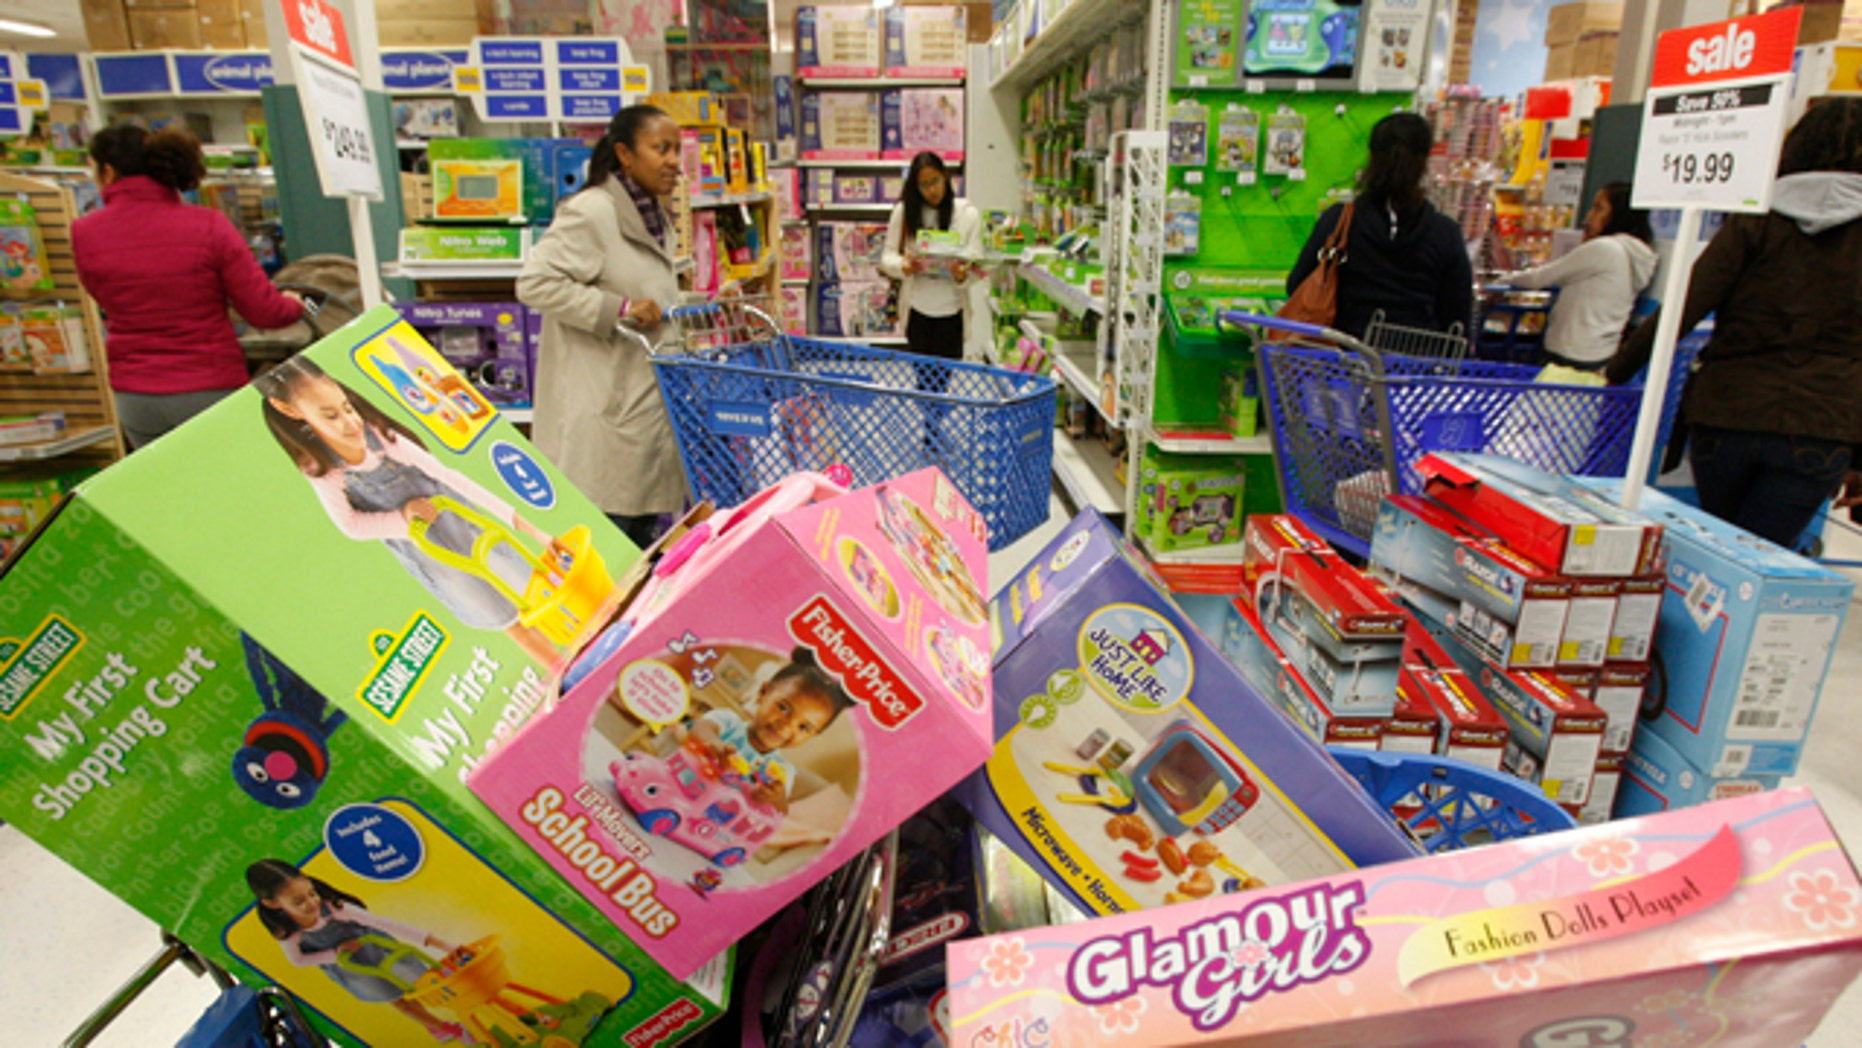 November 27, 2009: Shoppers look through the aisles during a Black Friday sales event at a Toys R Us store in Falls Church, Virginia.